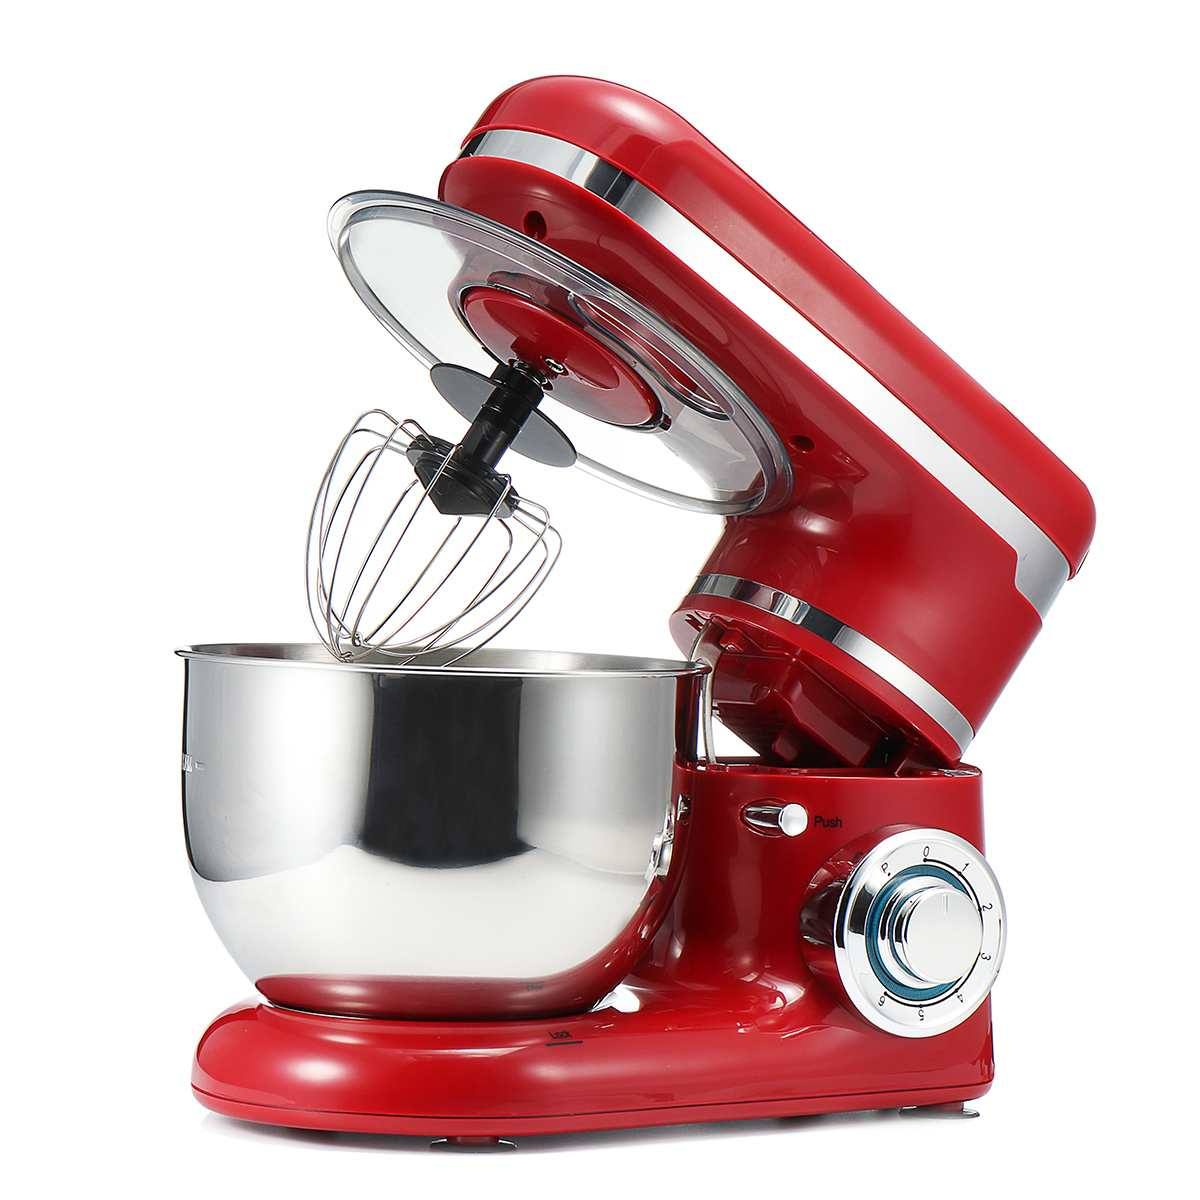 1200W 4L Stainless Steel Bowl Mixer Kitchen Blenders Mixer Cream Eggs Whisk Cake Dough Maker Bread Mixer Machine Food Processor